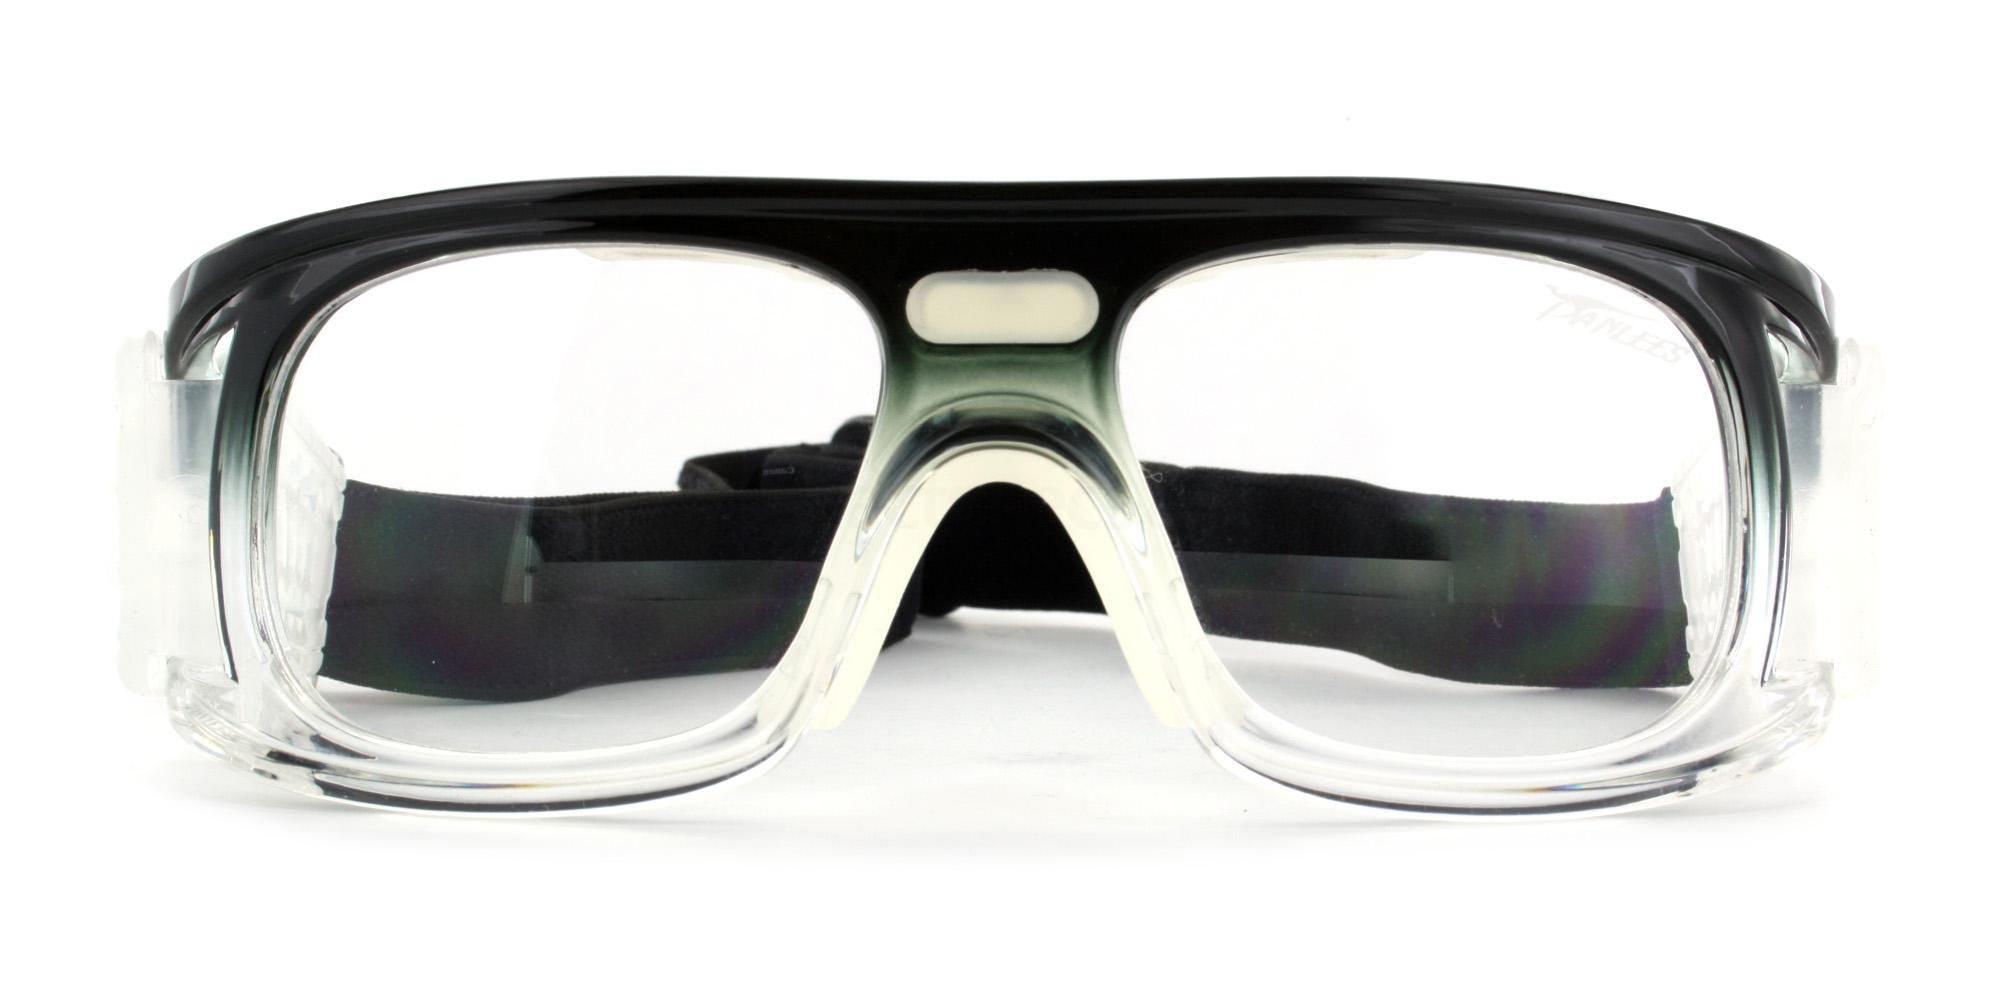 Black and Clear JH047 Sports Goggles, Aero